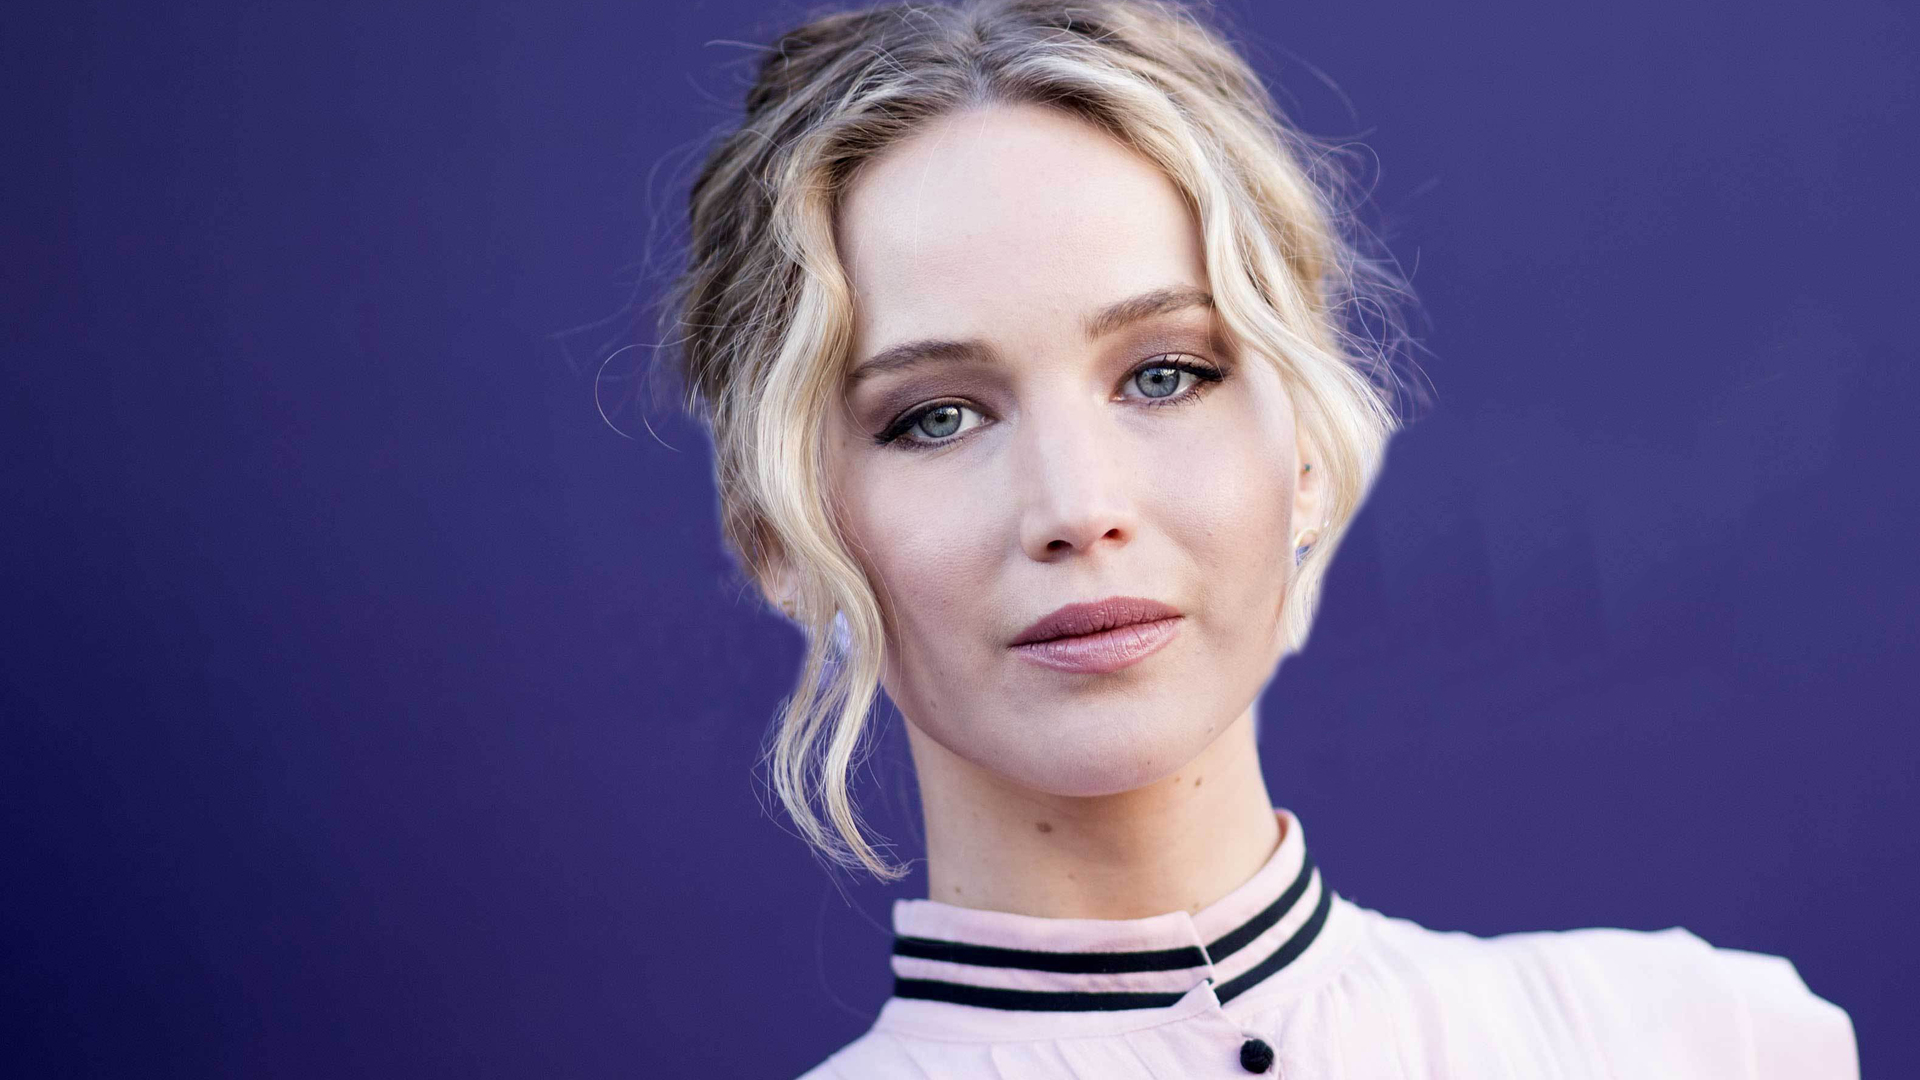 1920x1080 Jennifer Lawrence 2017 4k Laptop Full Hd 1080p Hd 4k Wallpapers Images Backgrounds Photos And Pictures